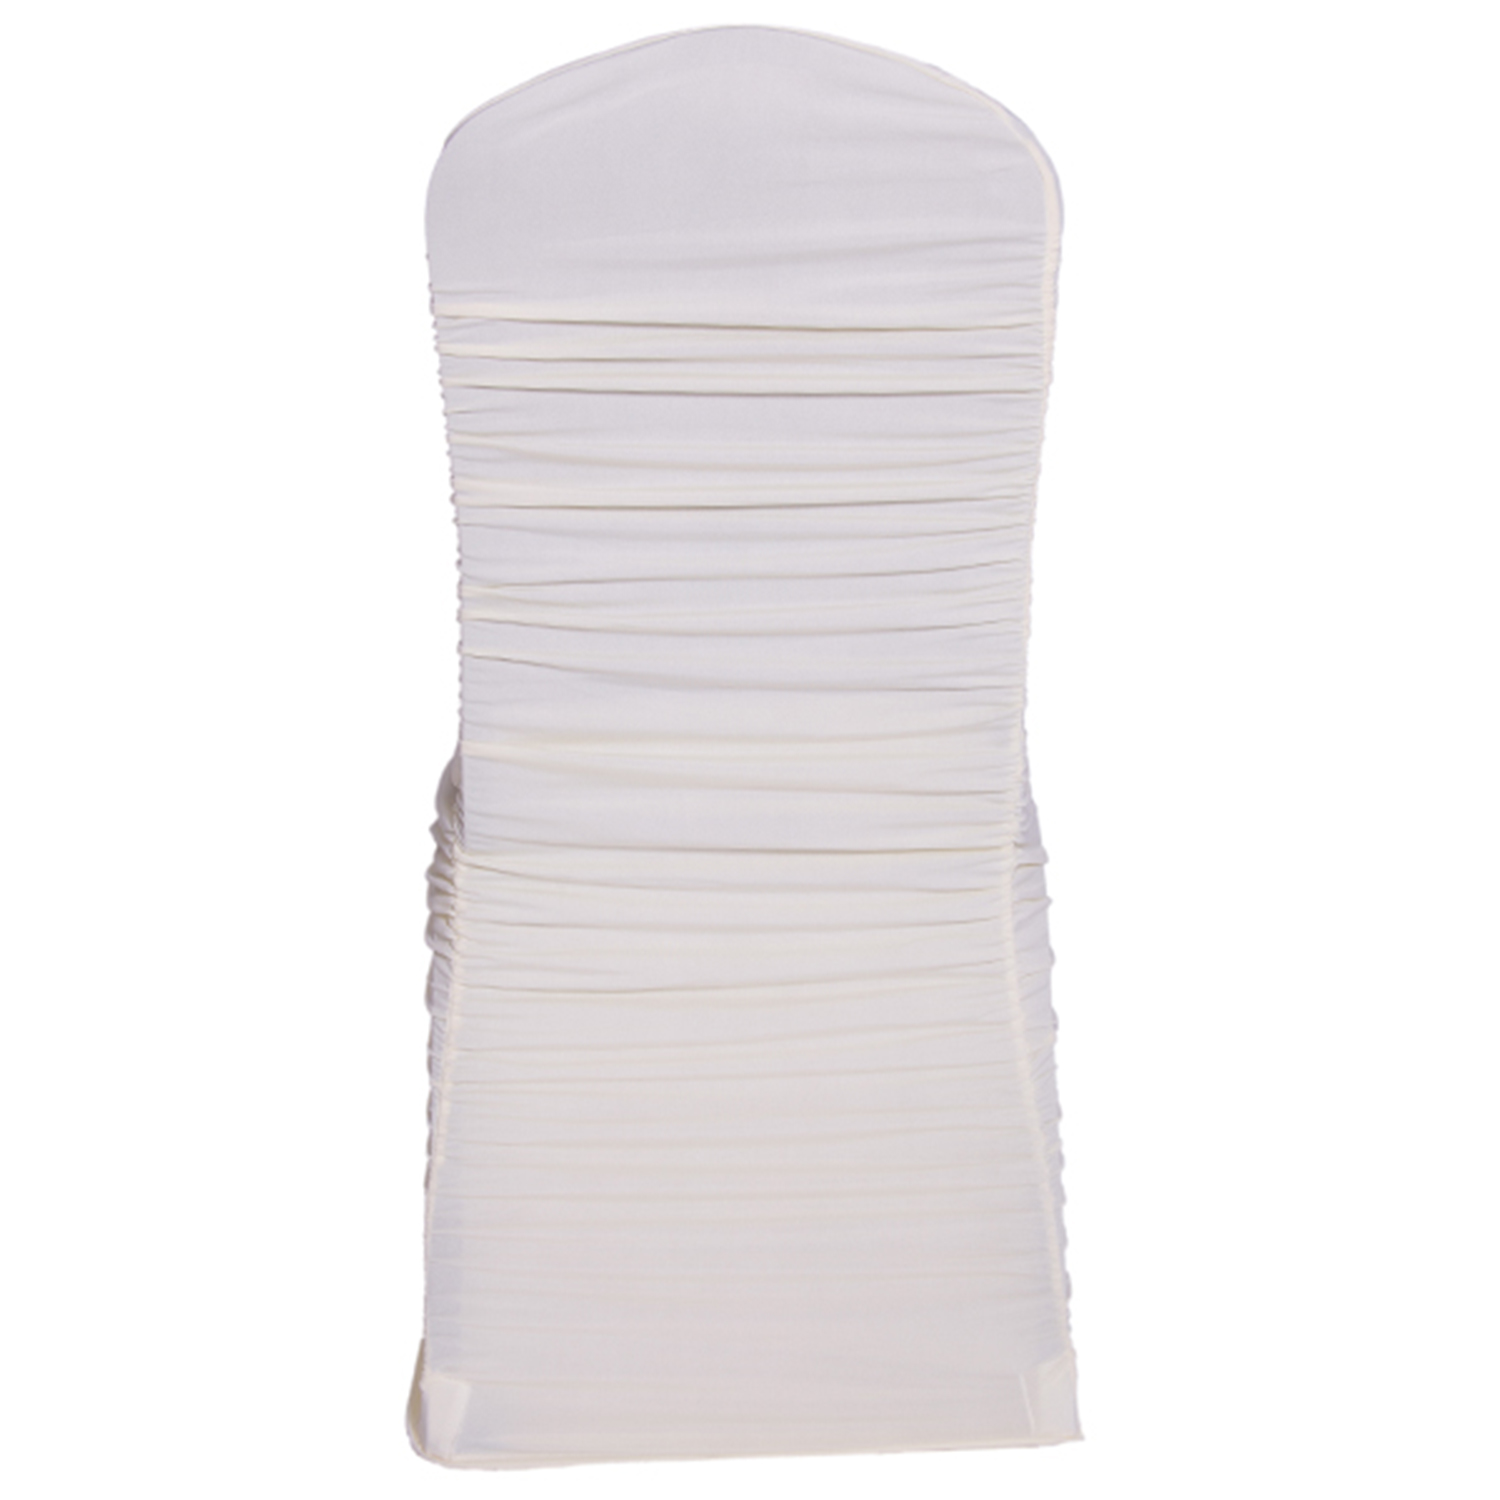 ivory ruched chair covers folding types for weddings